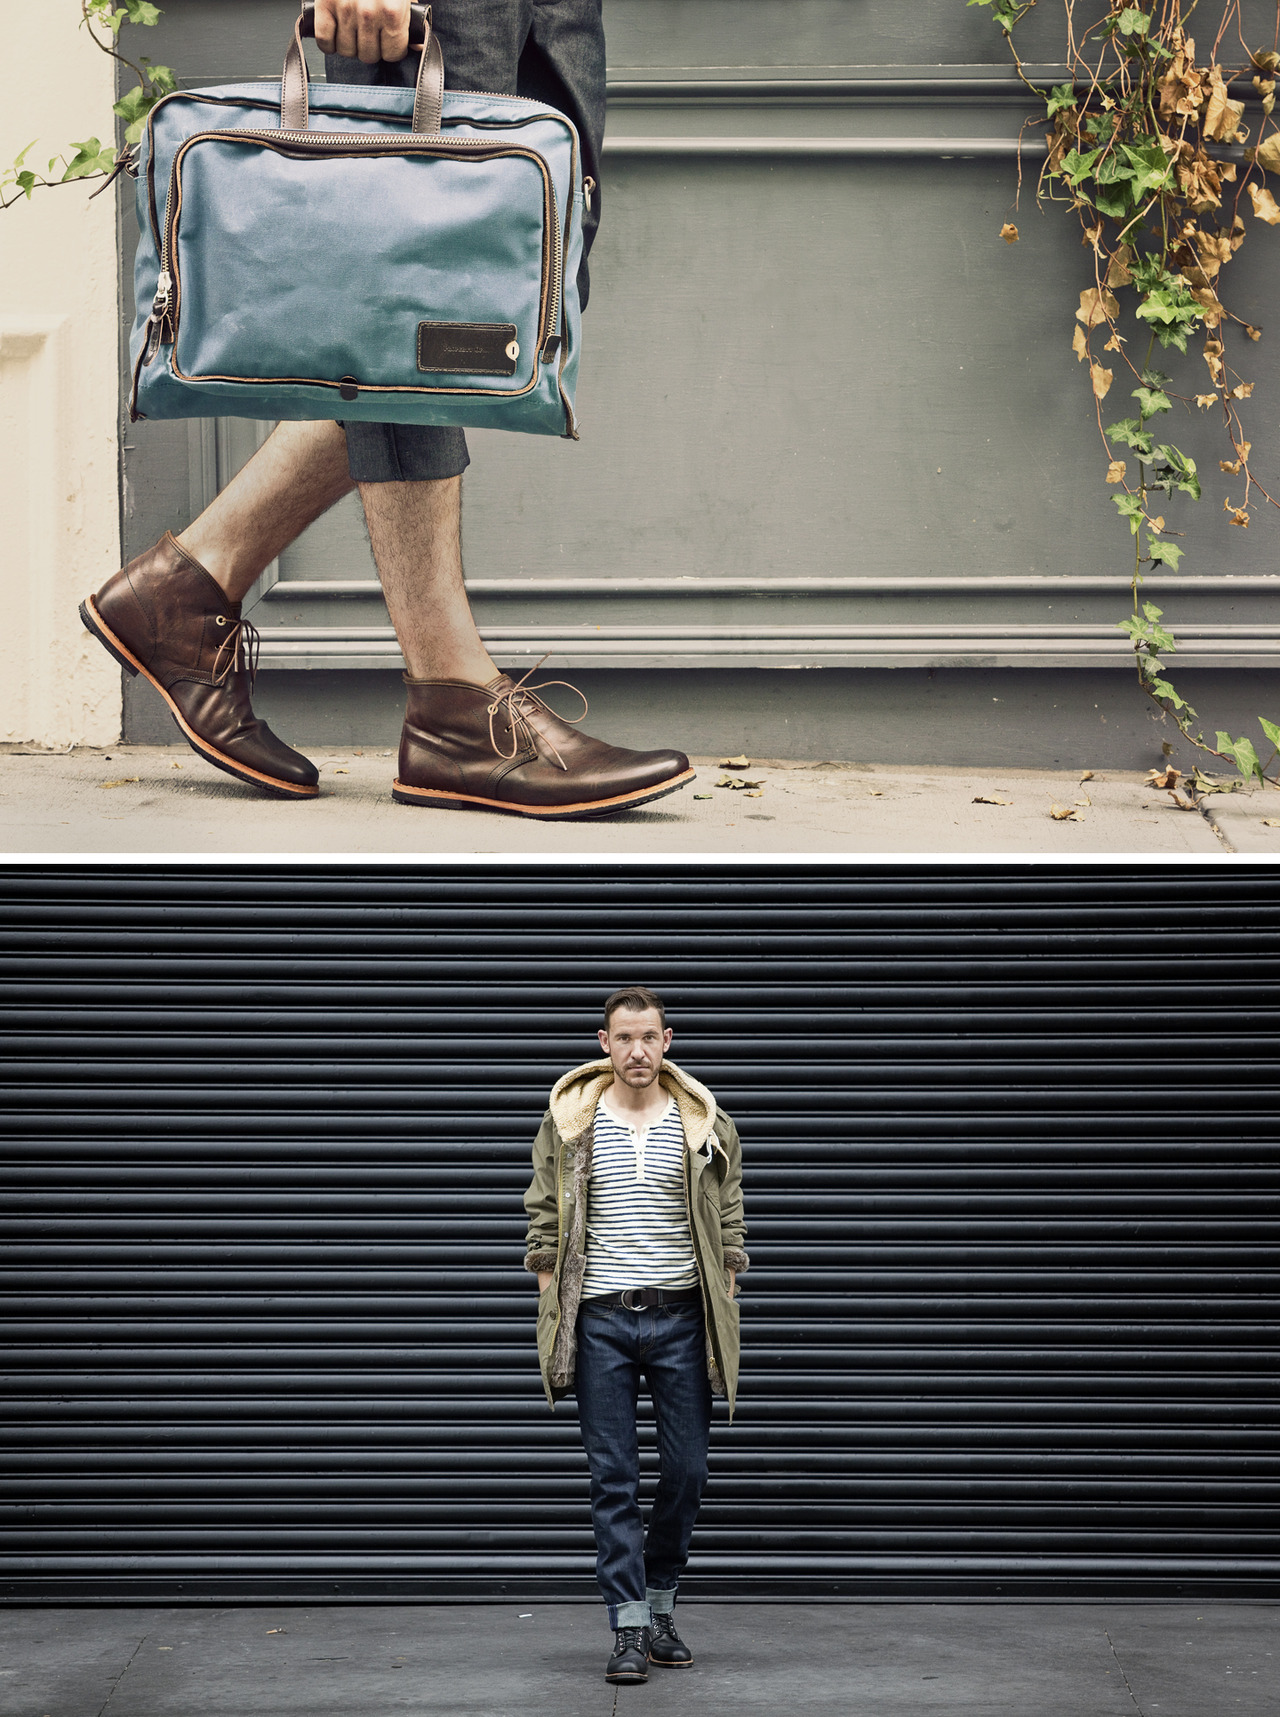 jameschororos:  No. 240 | Flying A | NYShot a Fall lookbook series in SoHo on Sunday for Flying A with the dudes from ClosetFreaks.  The full set will be up on the Flying A website in a few weeks.   Great shot by our talented friend James! More coming soon.